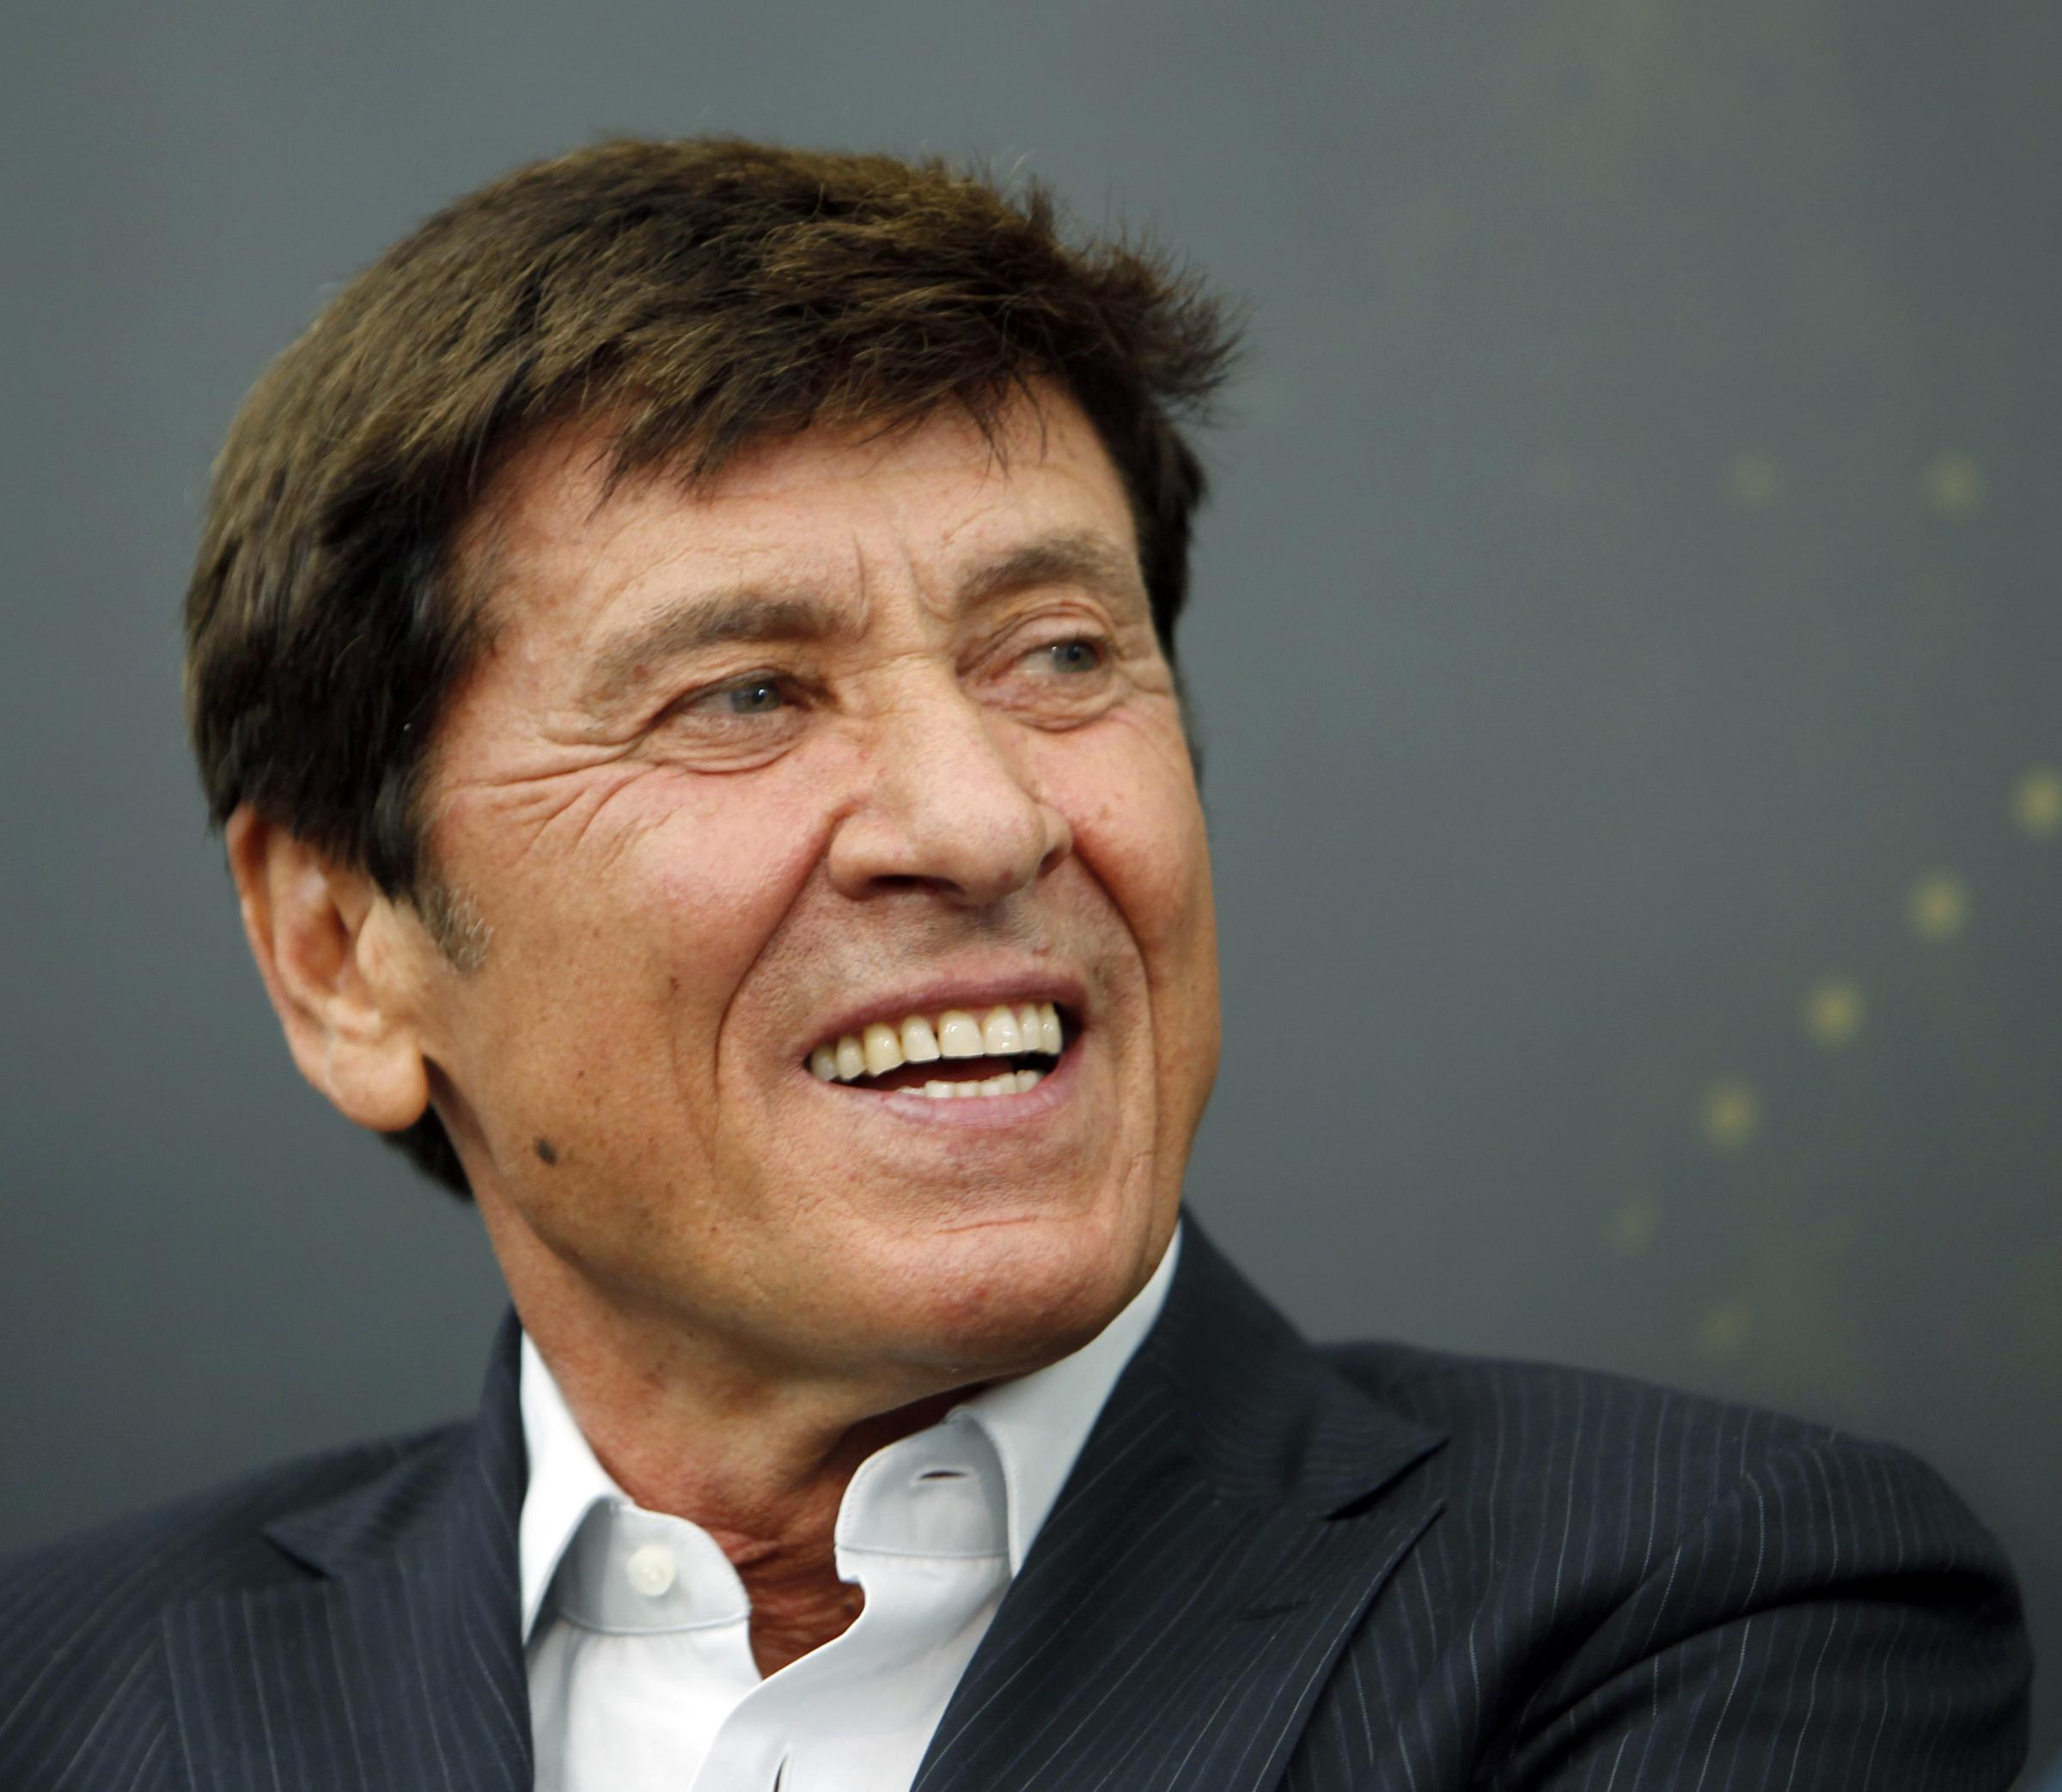 gianni morandi - photo #40